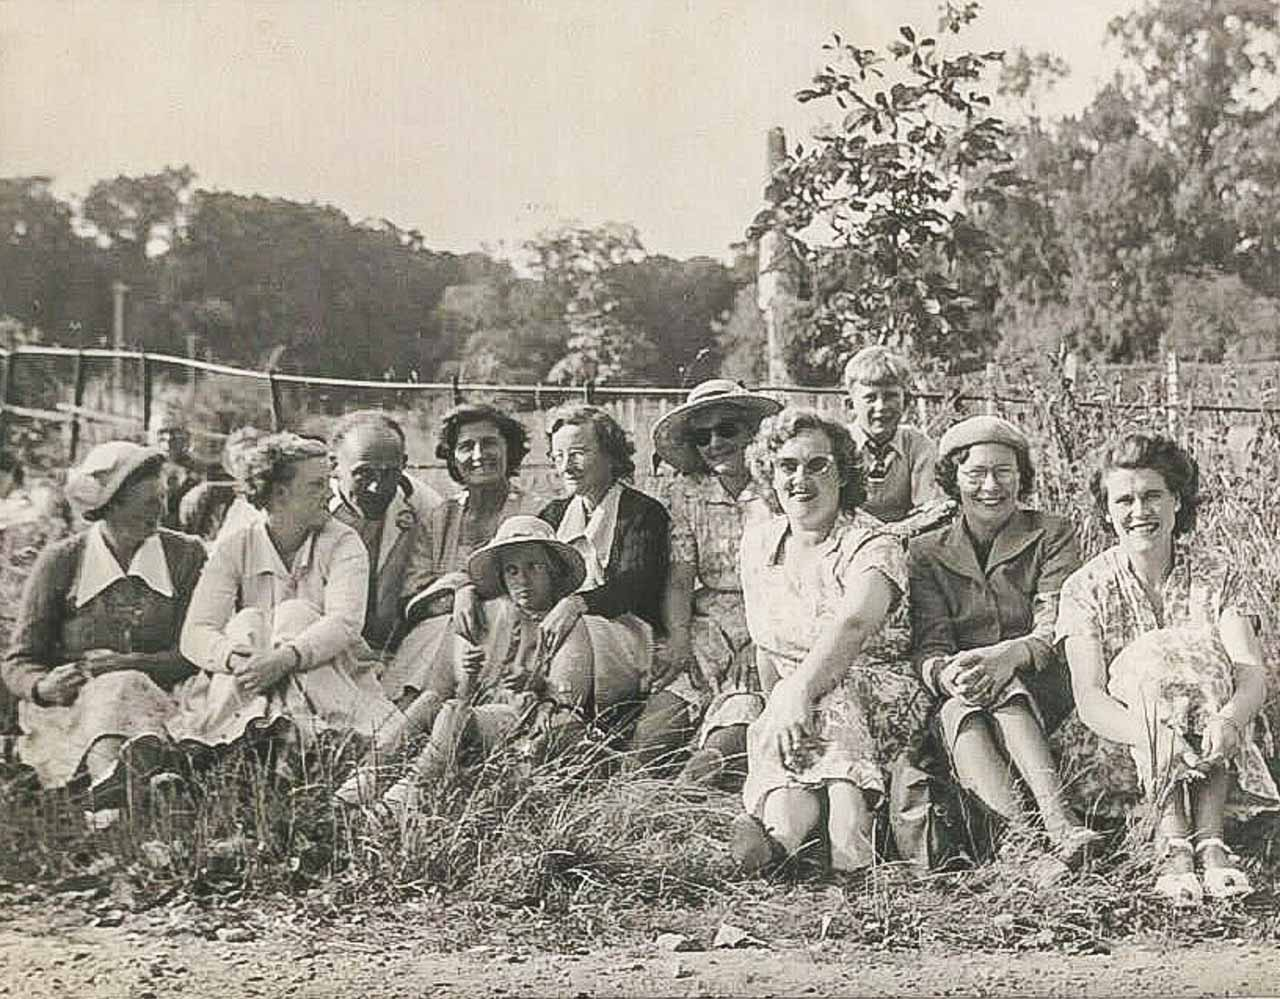 A 1950's Cattistock village outing